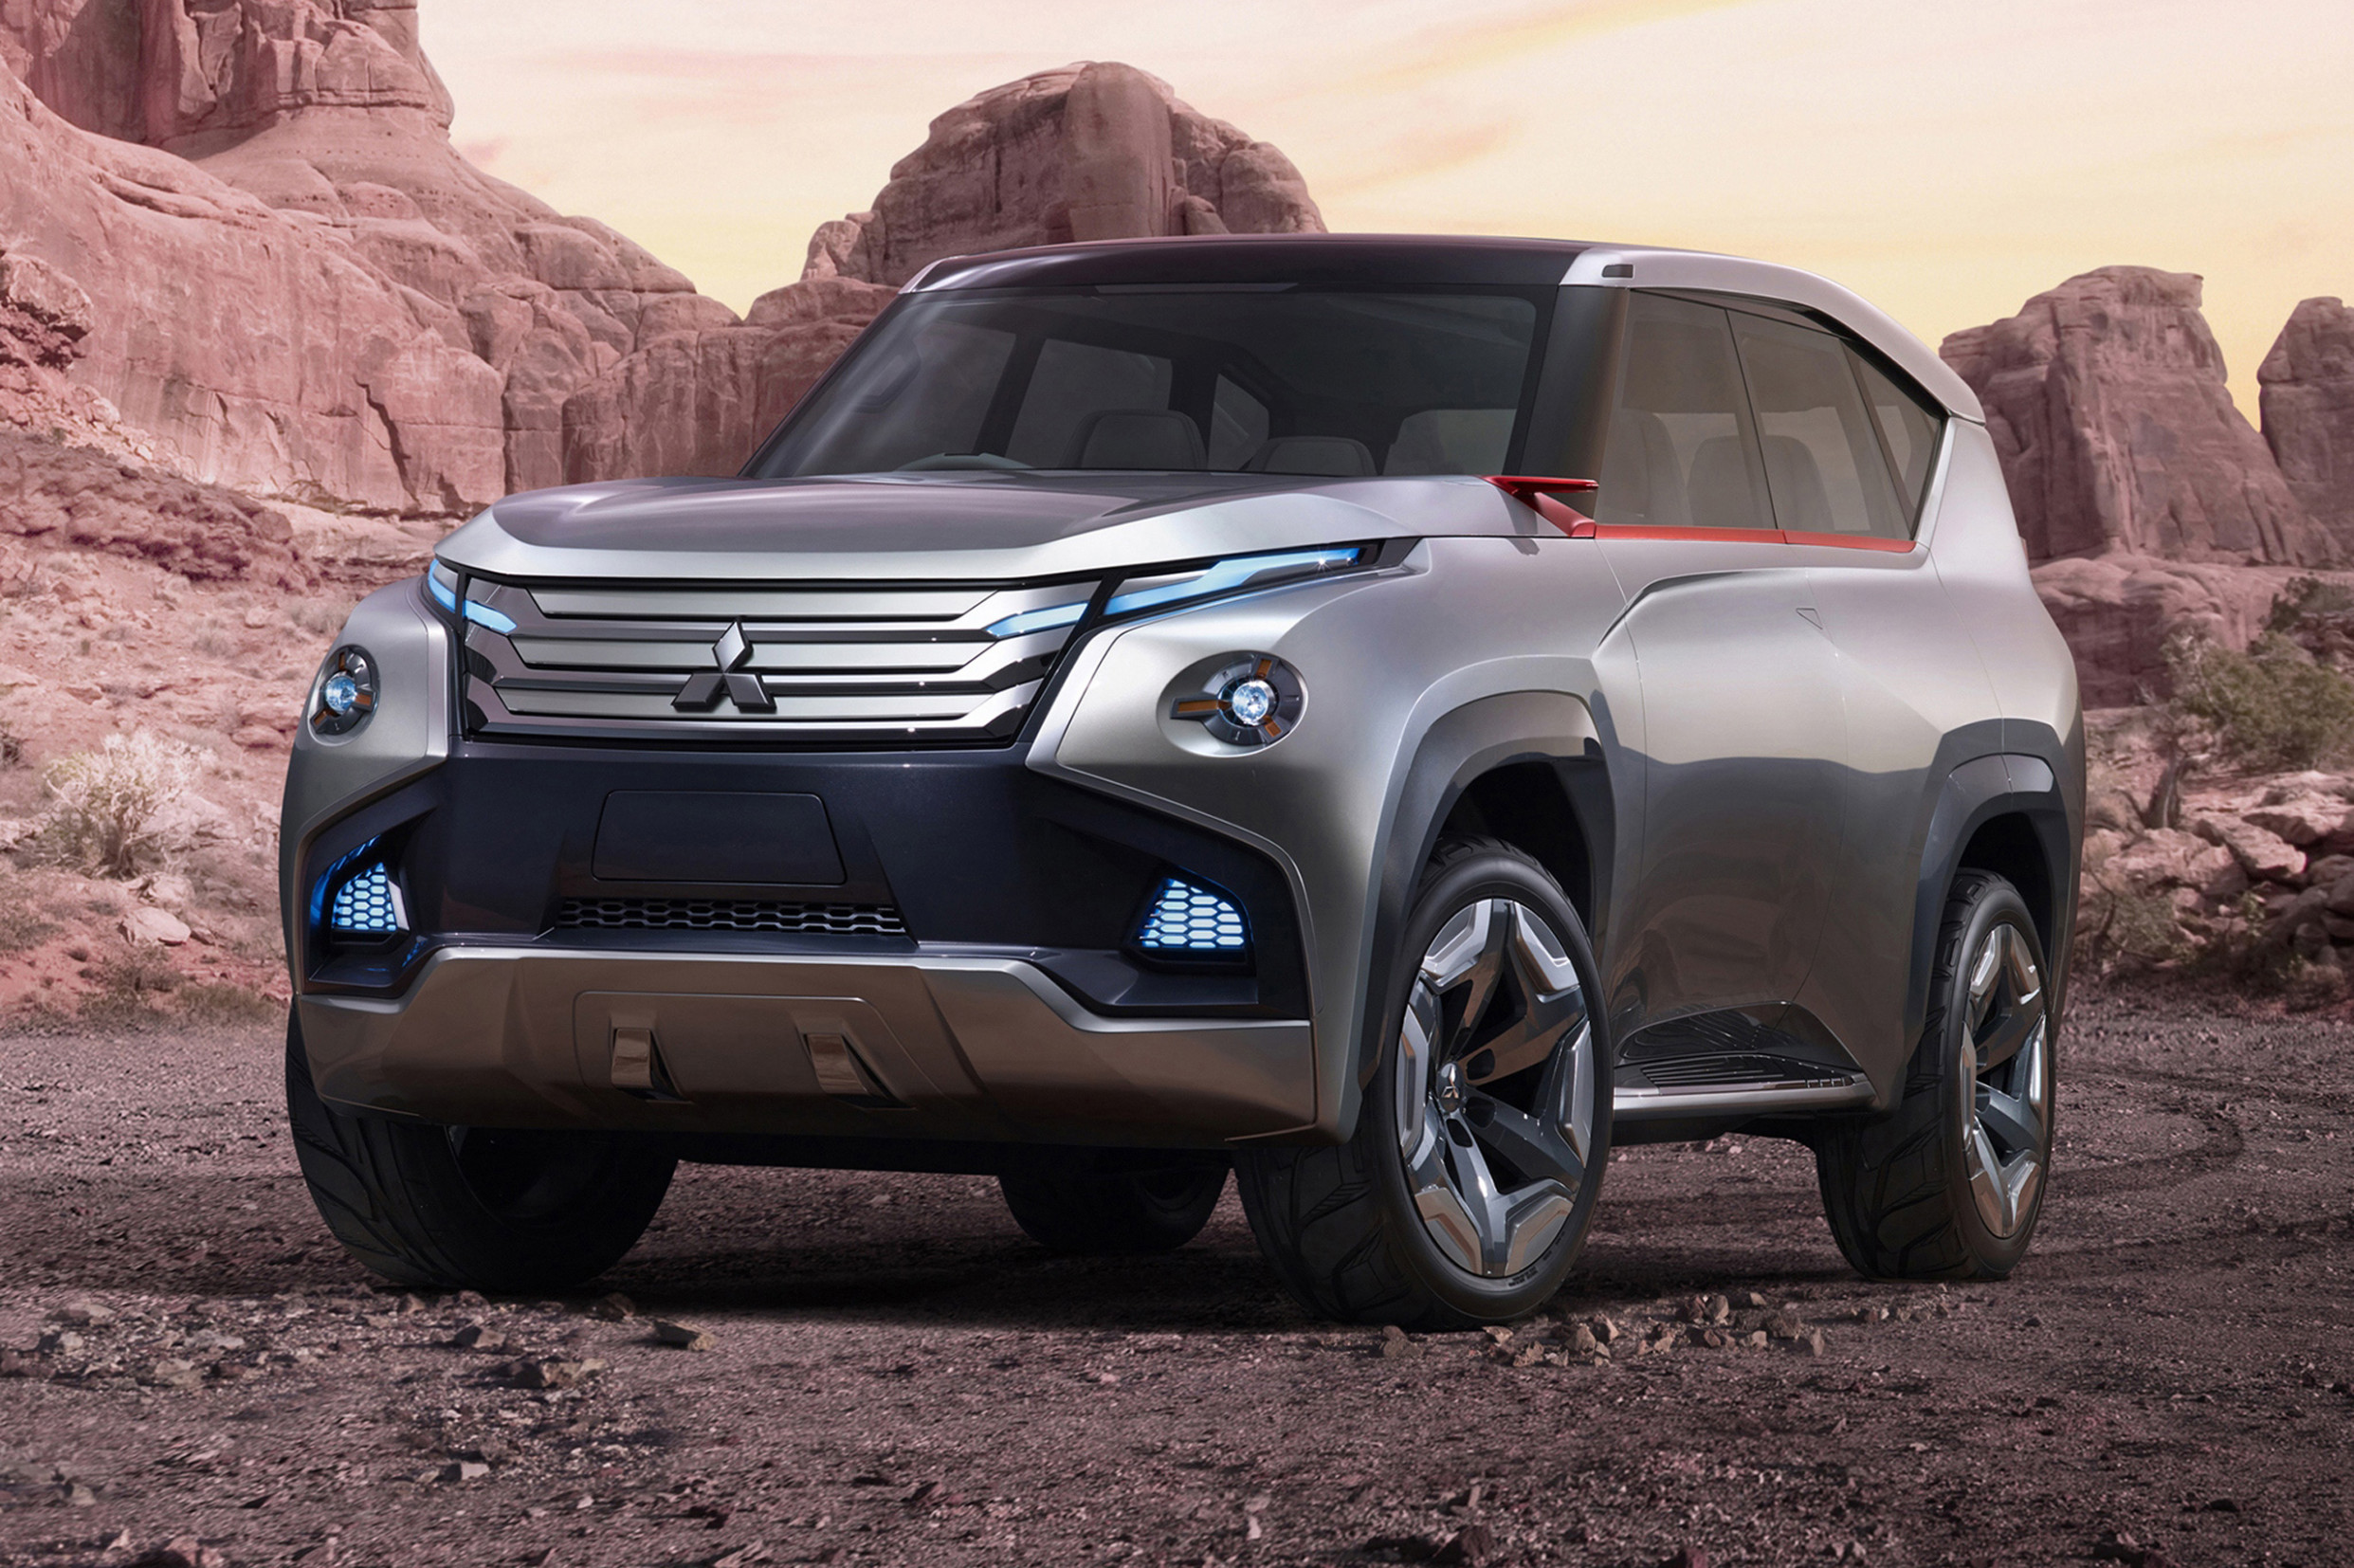 Redesign and Concept 2022 All Mitsubishi Outlander Sport